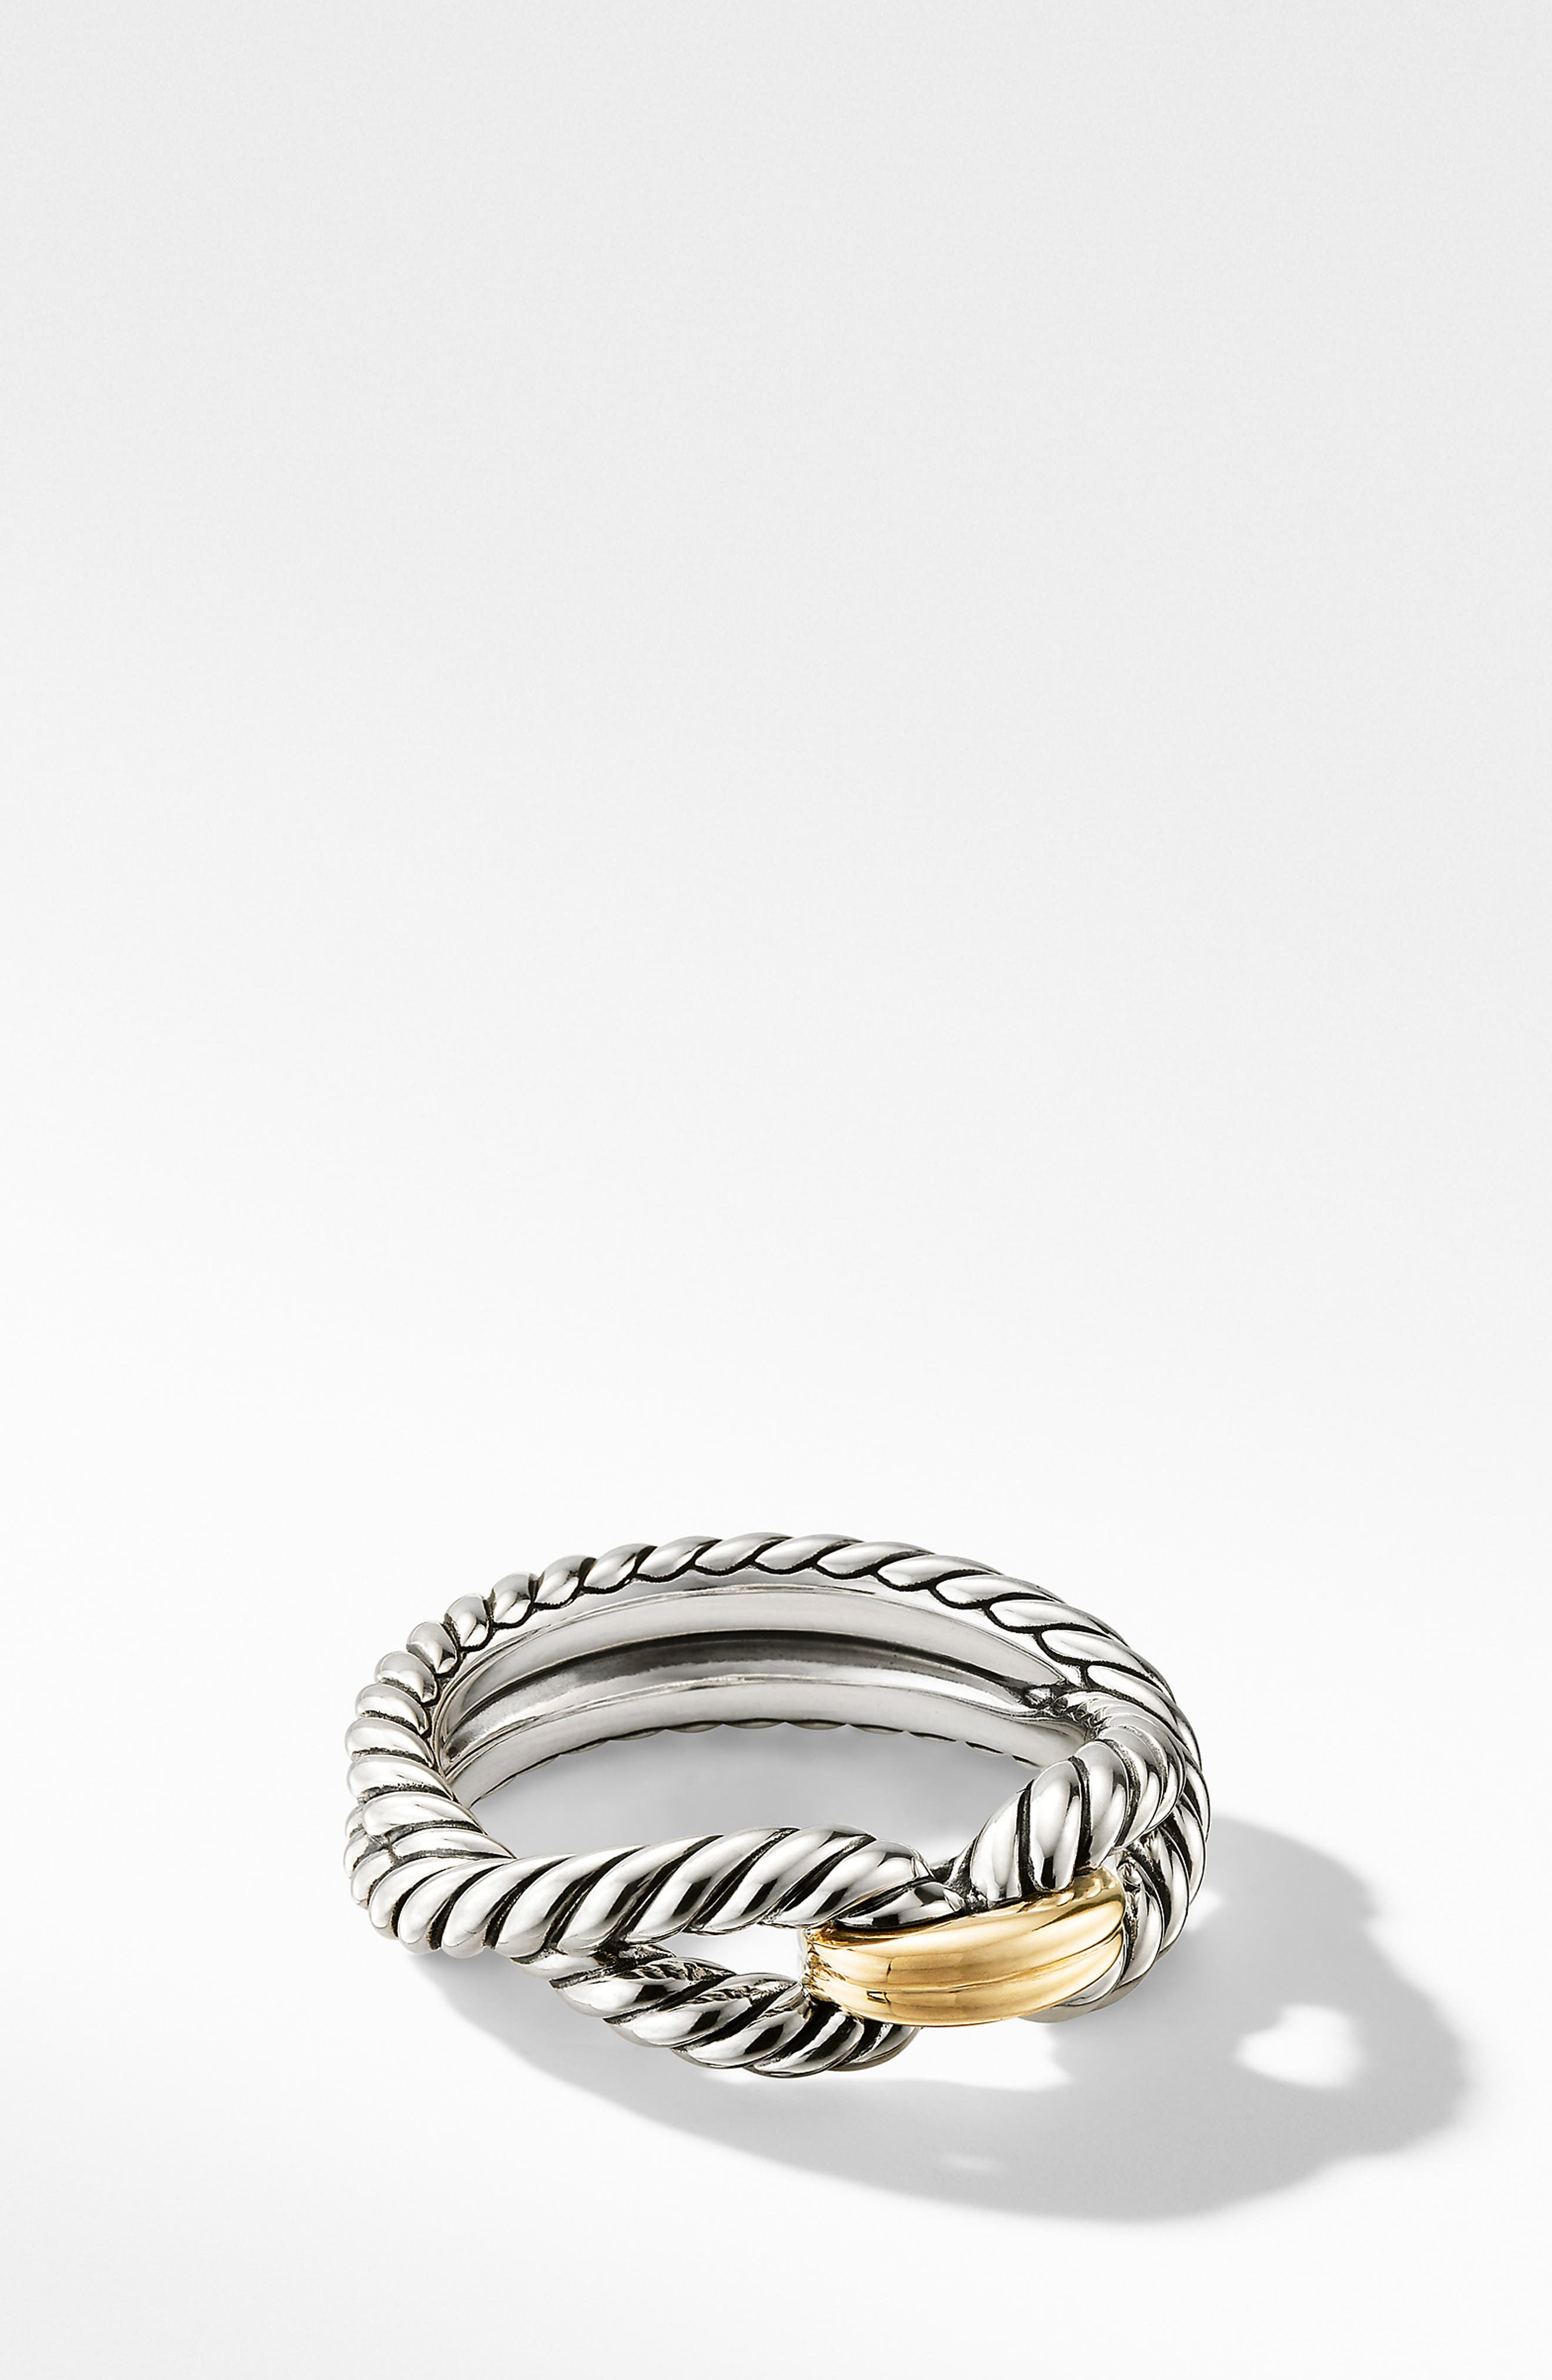 Cable Loop Ring with 18K Gold,                             Main thumbnail 1, color,                             YELLOW GOLD/ STERLING SILVER